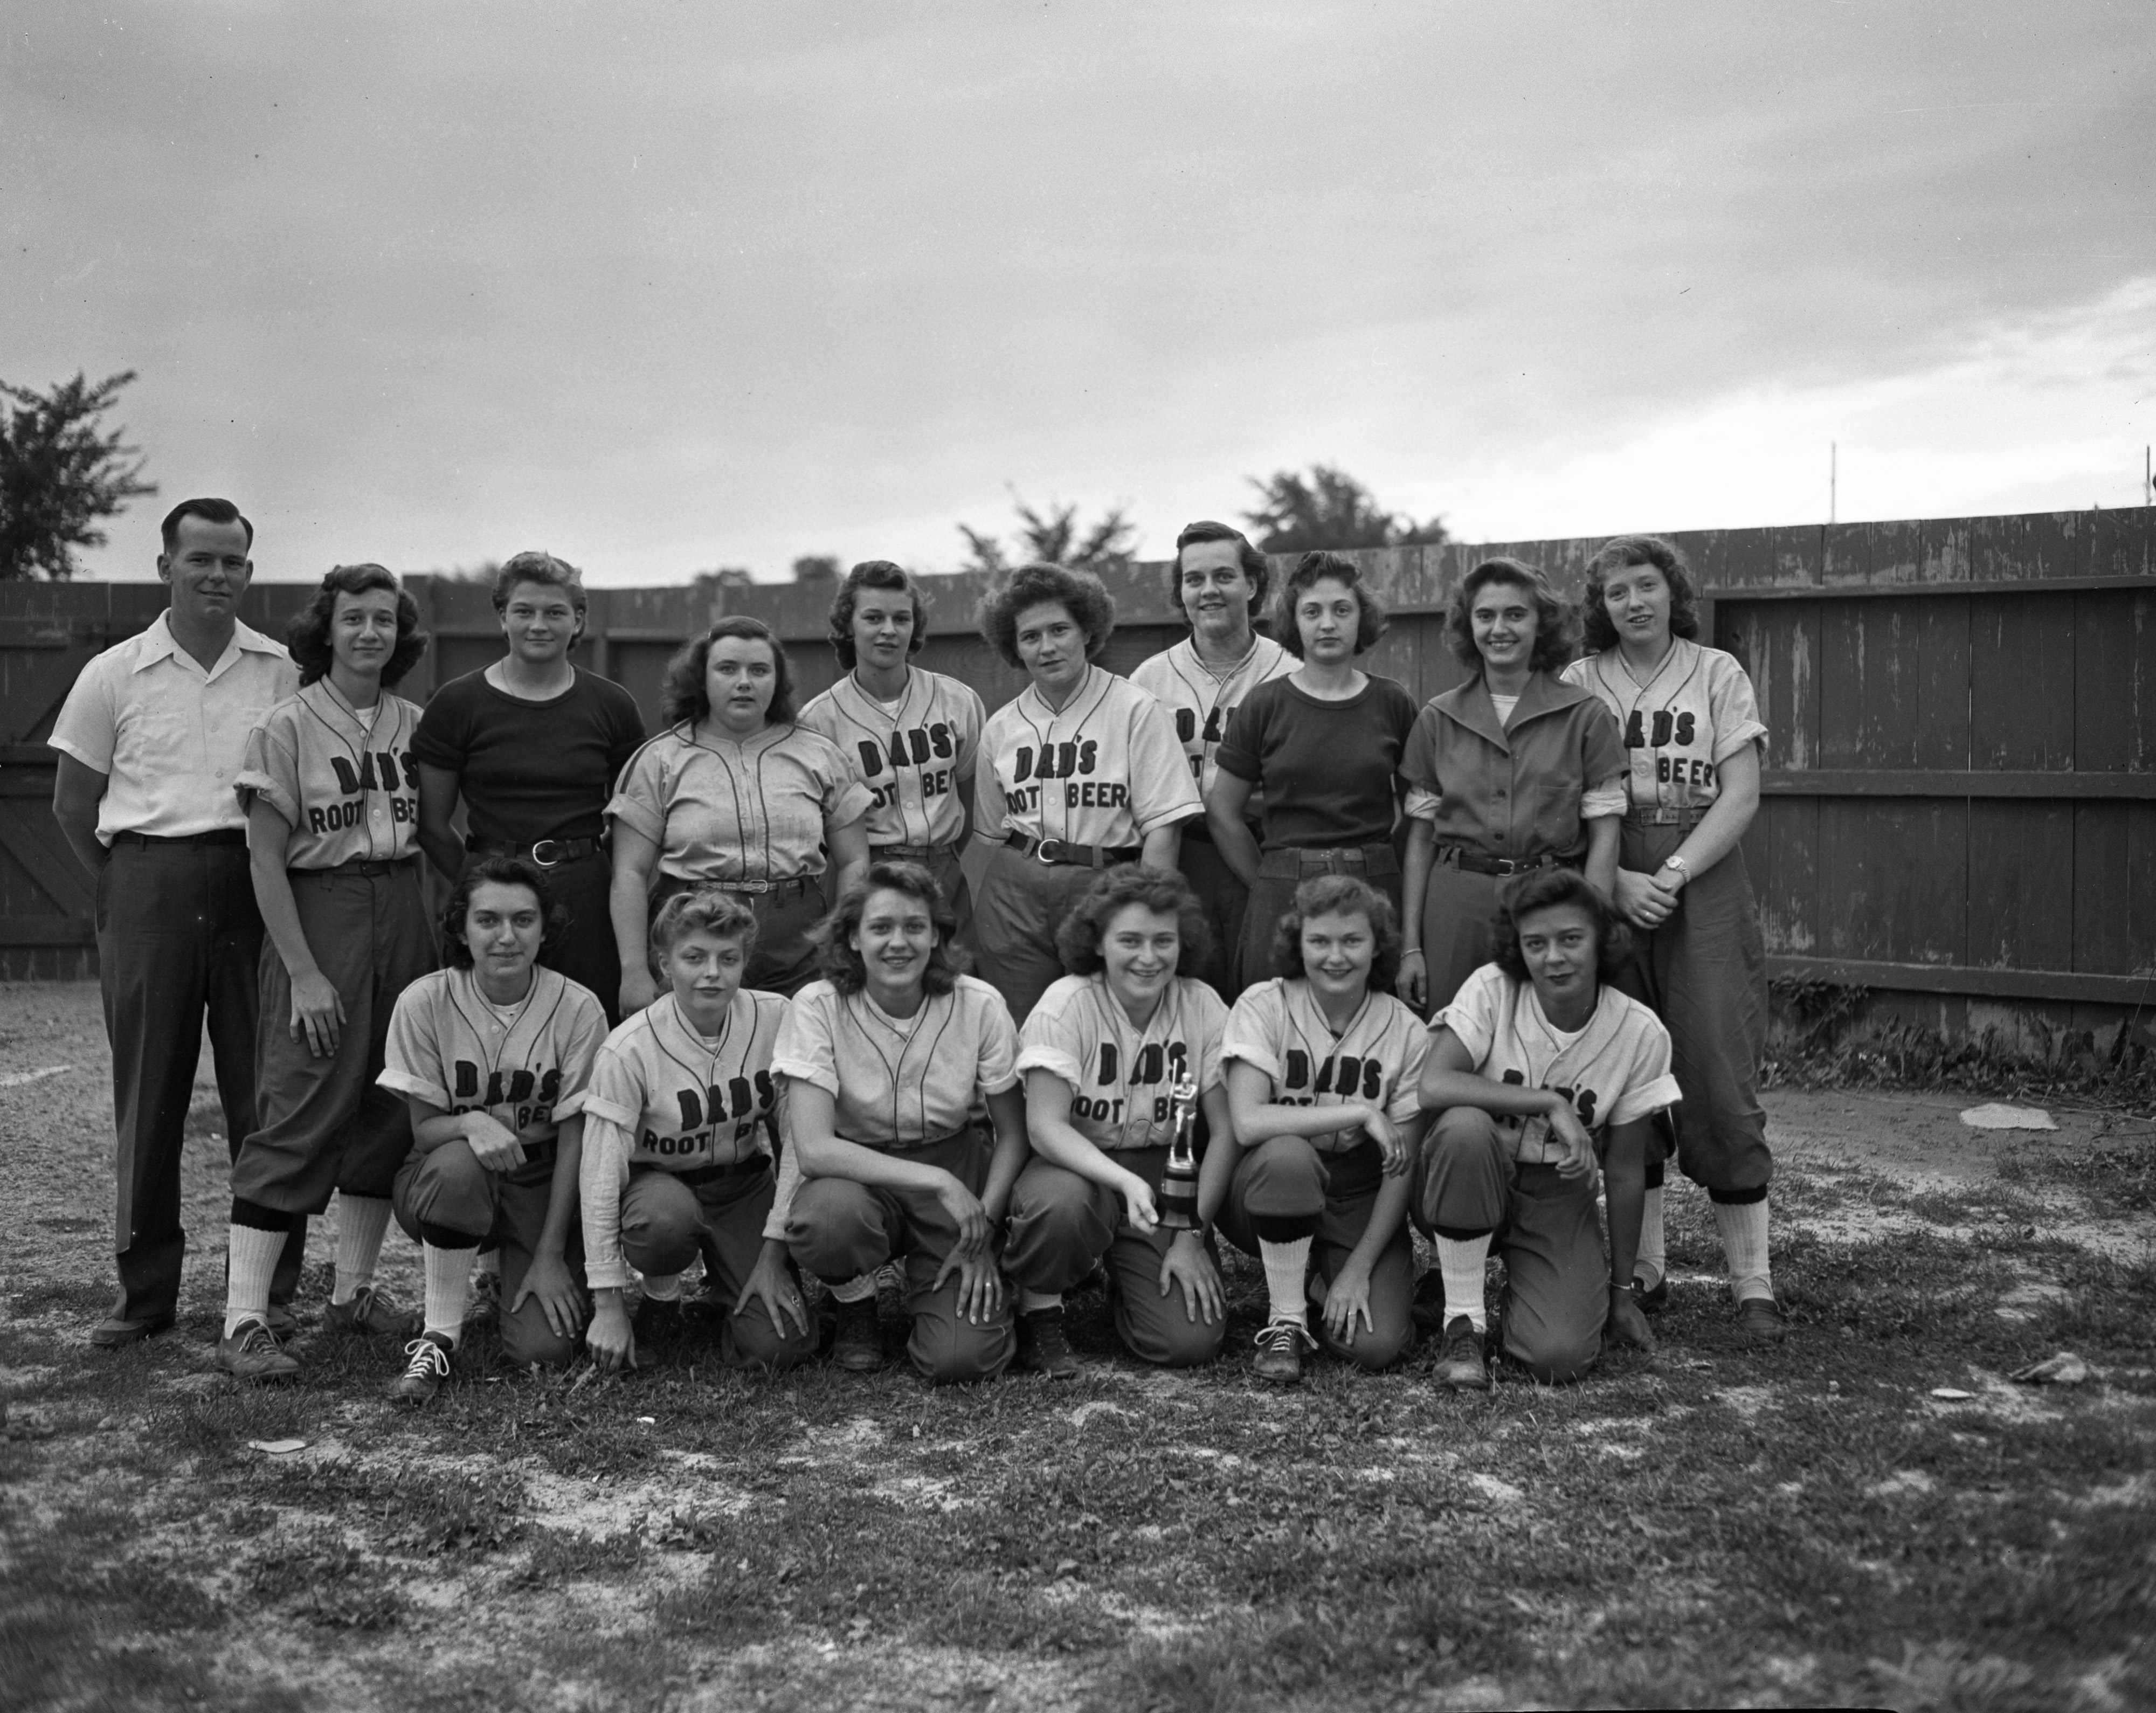 Dad's Root Beer girls team of Ann Arbor, Class A State Champs, September 1947 image